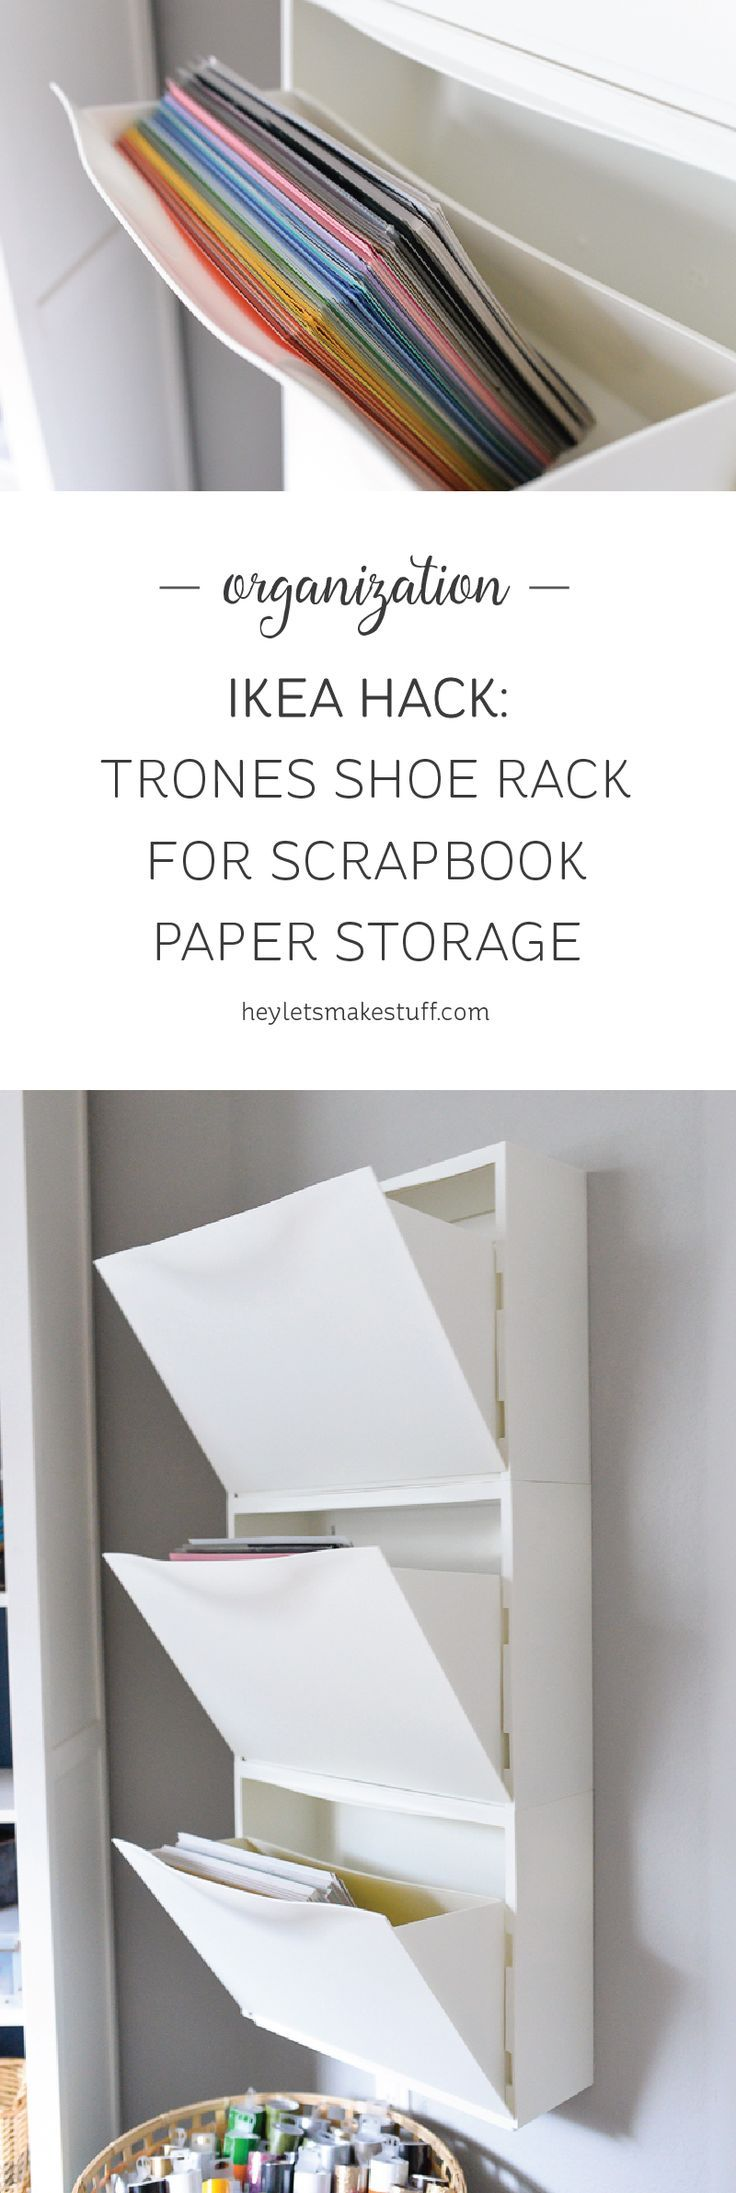 IKEA Hack: Trones Shoe Holder for Paper Storage